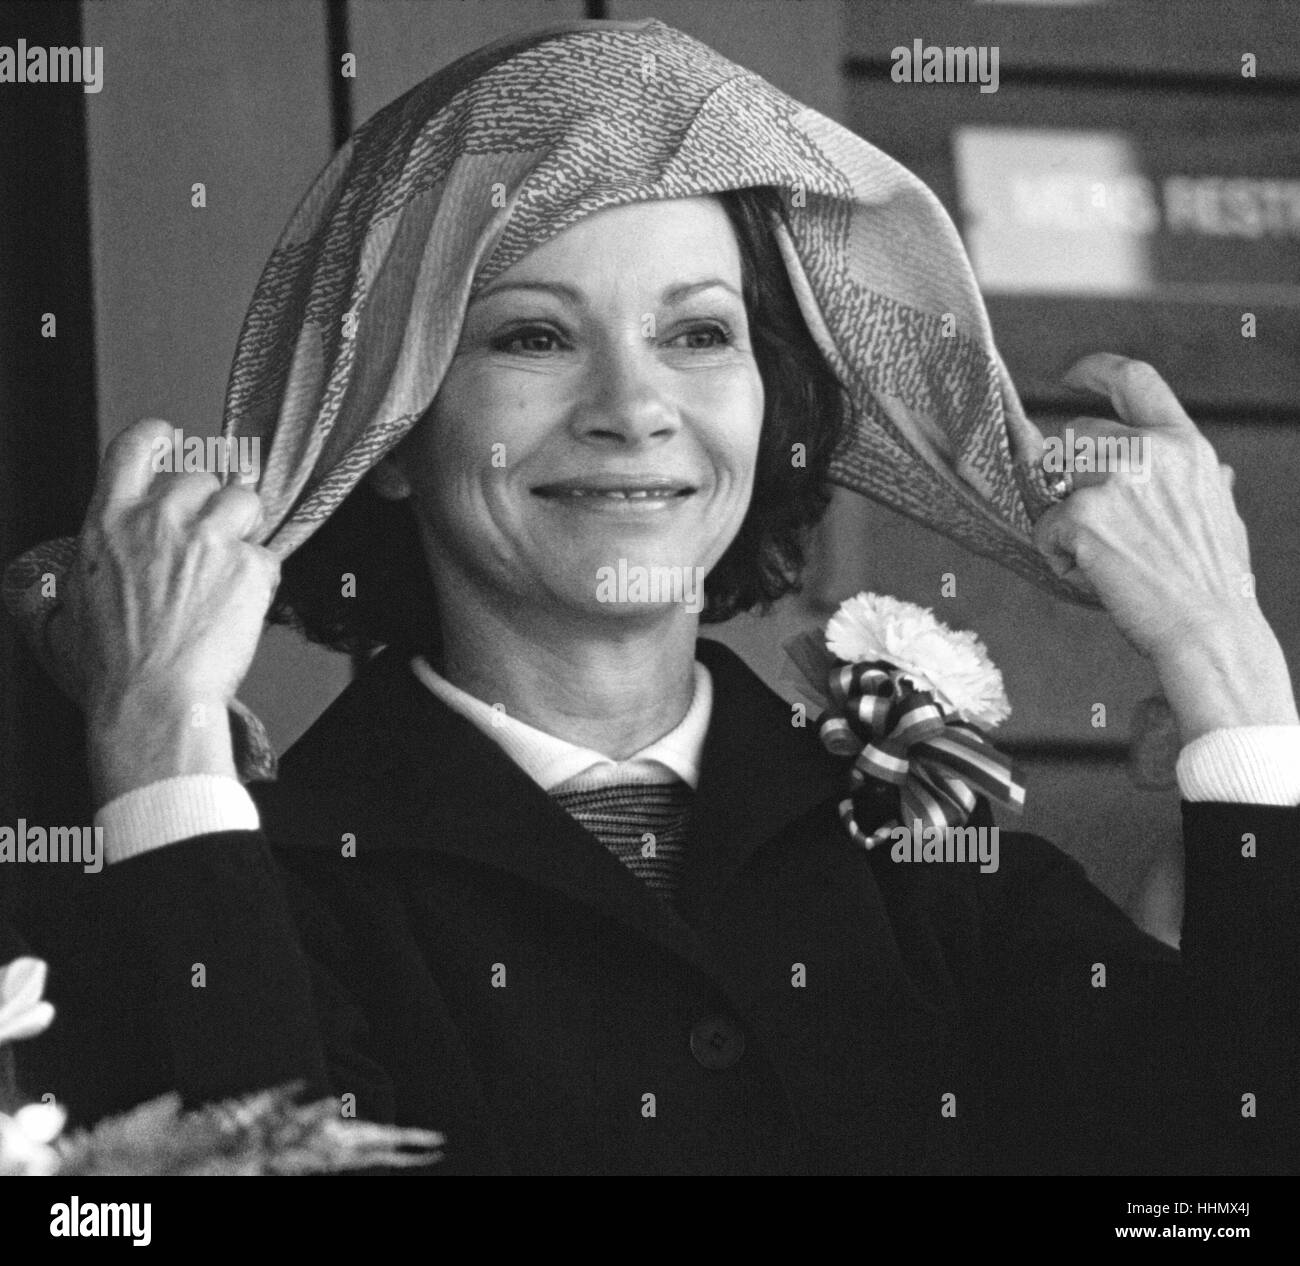 First Lady of the United States, Rosalynn Carter and her fly away scarf at an event in 1979. Stock Photo